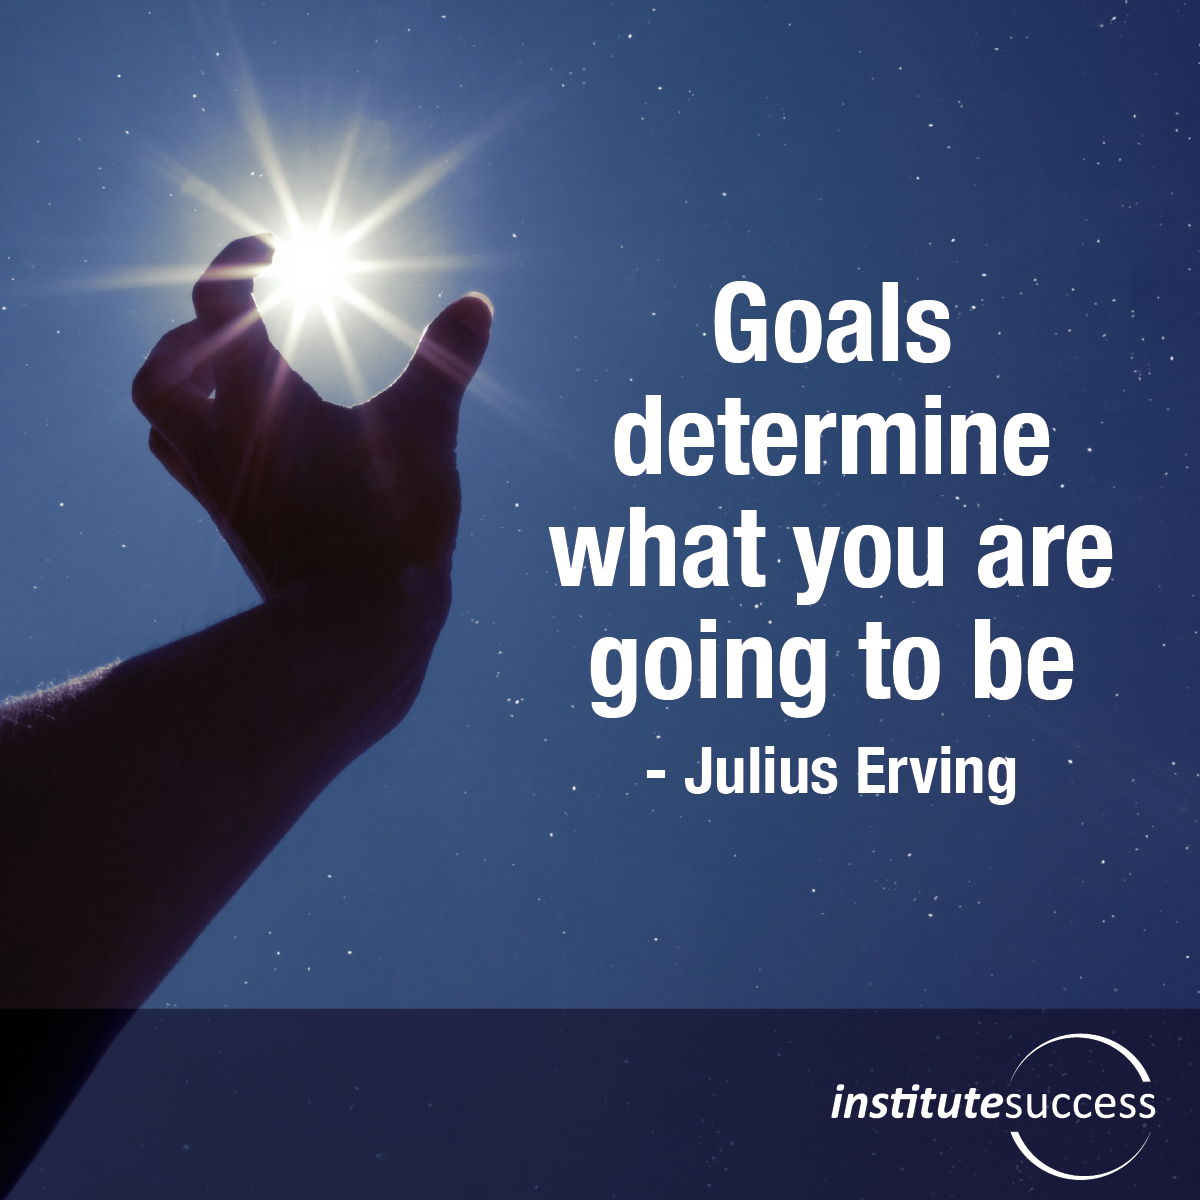 Goals determine what you are going to be – Julius Erving